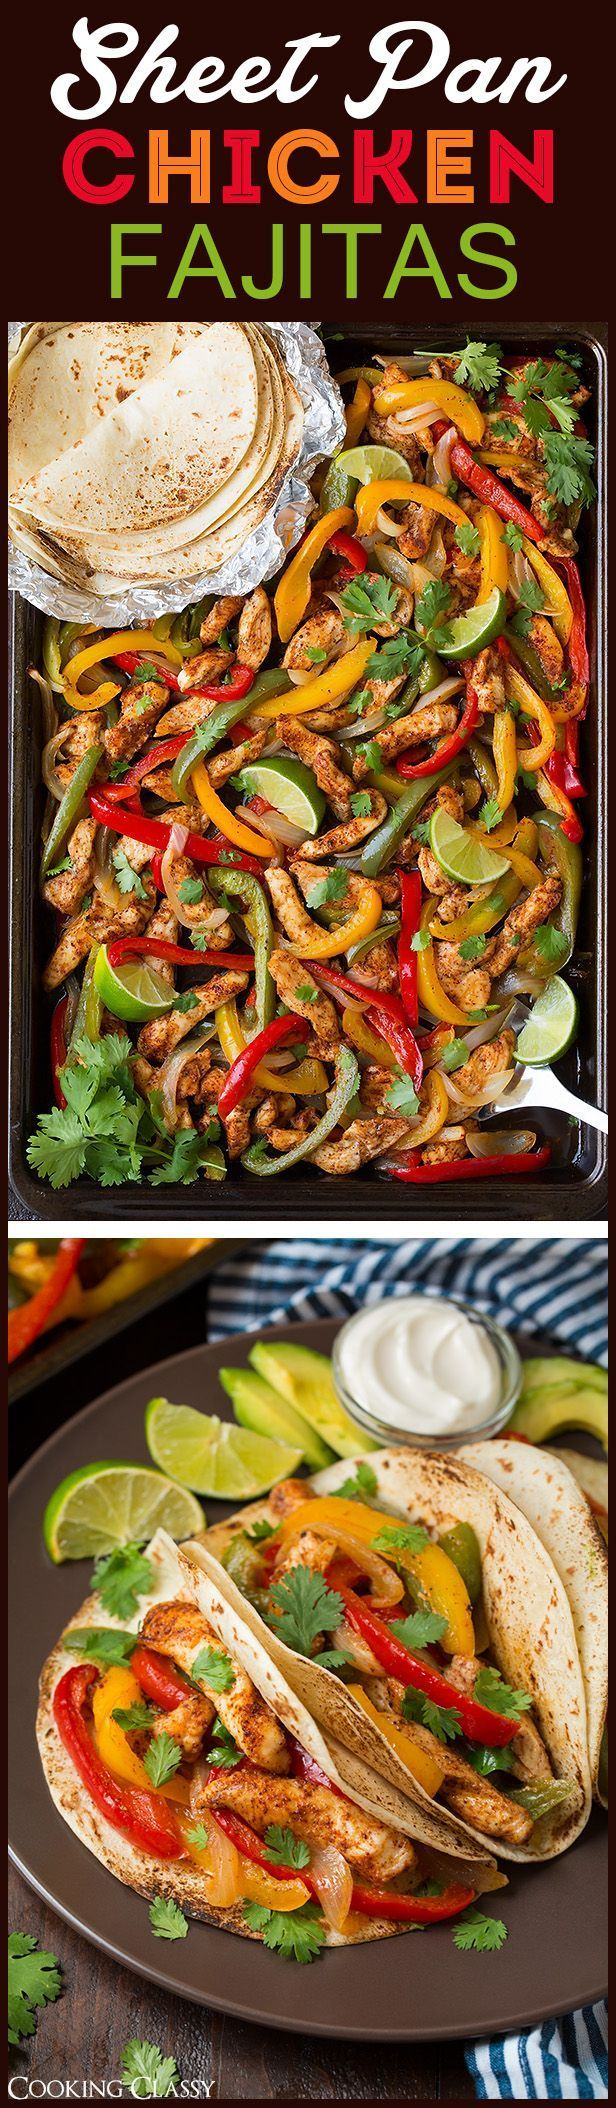 Sheet Pan Fajitas - easy clean up, DELICIOUS flavor! Everyone loved these! Definitely a repeat recipe!